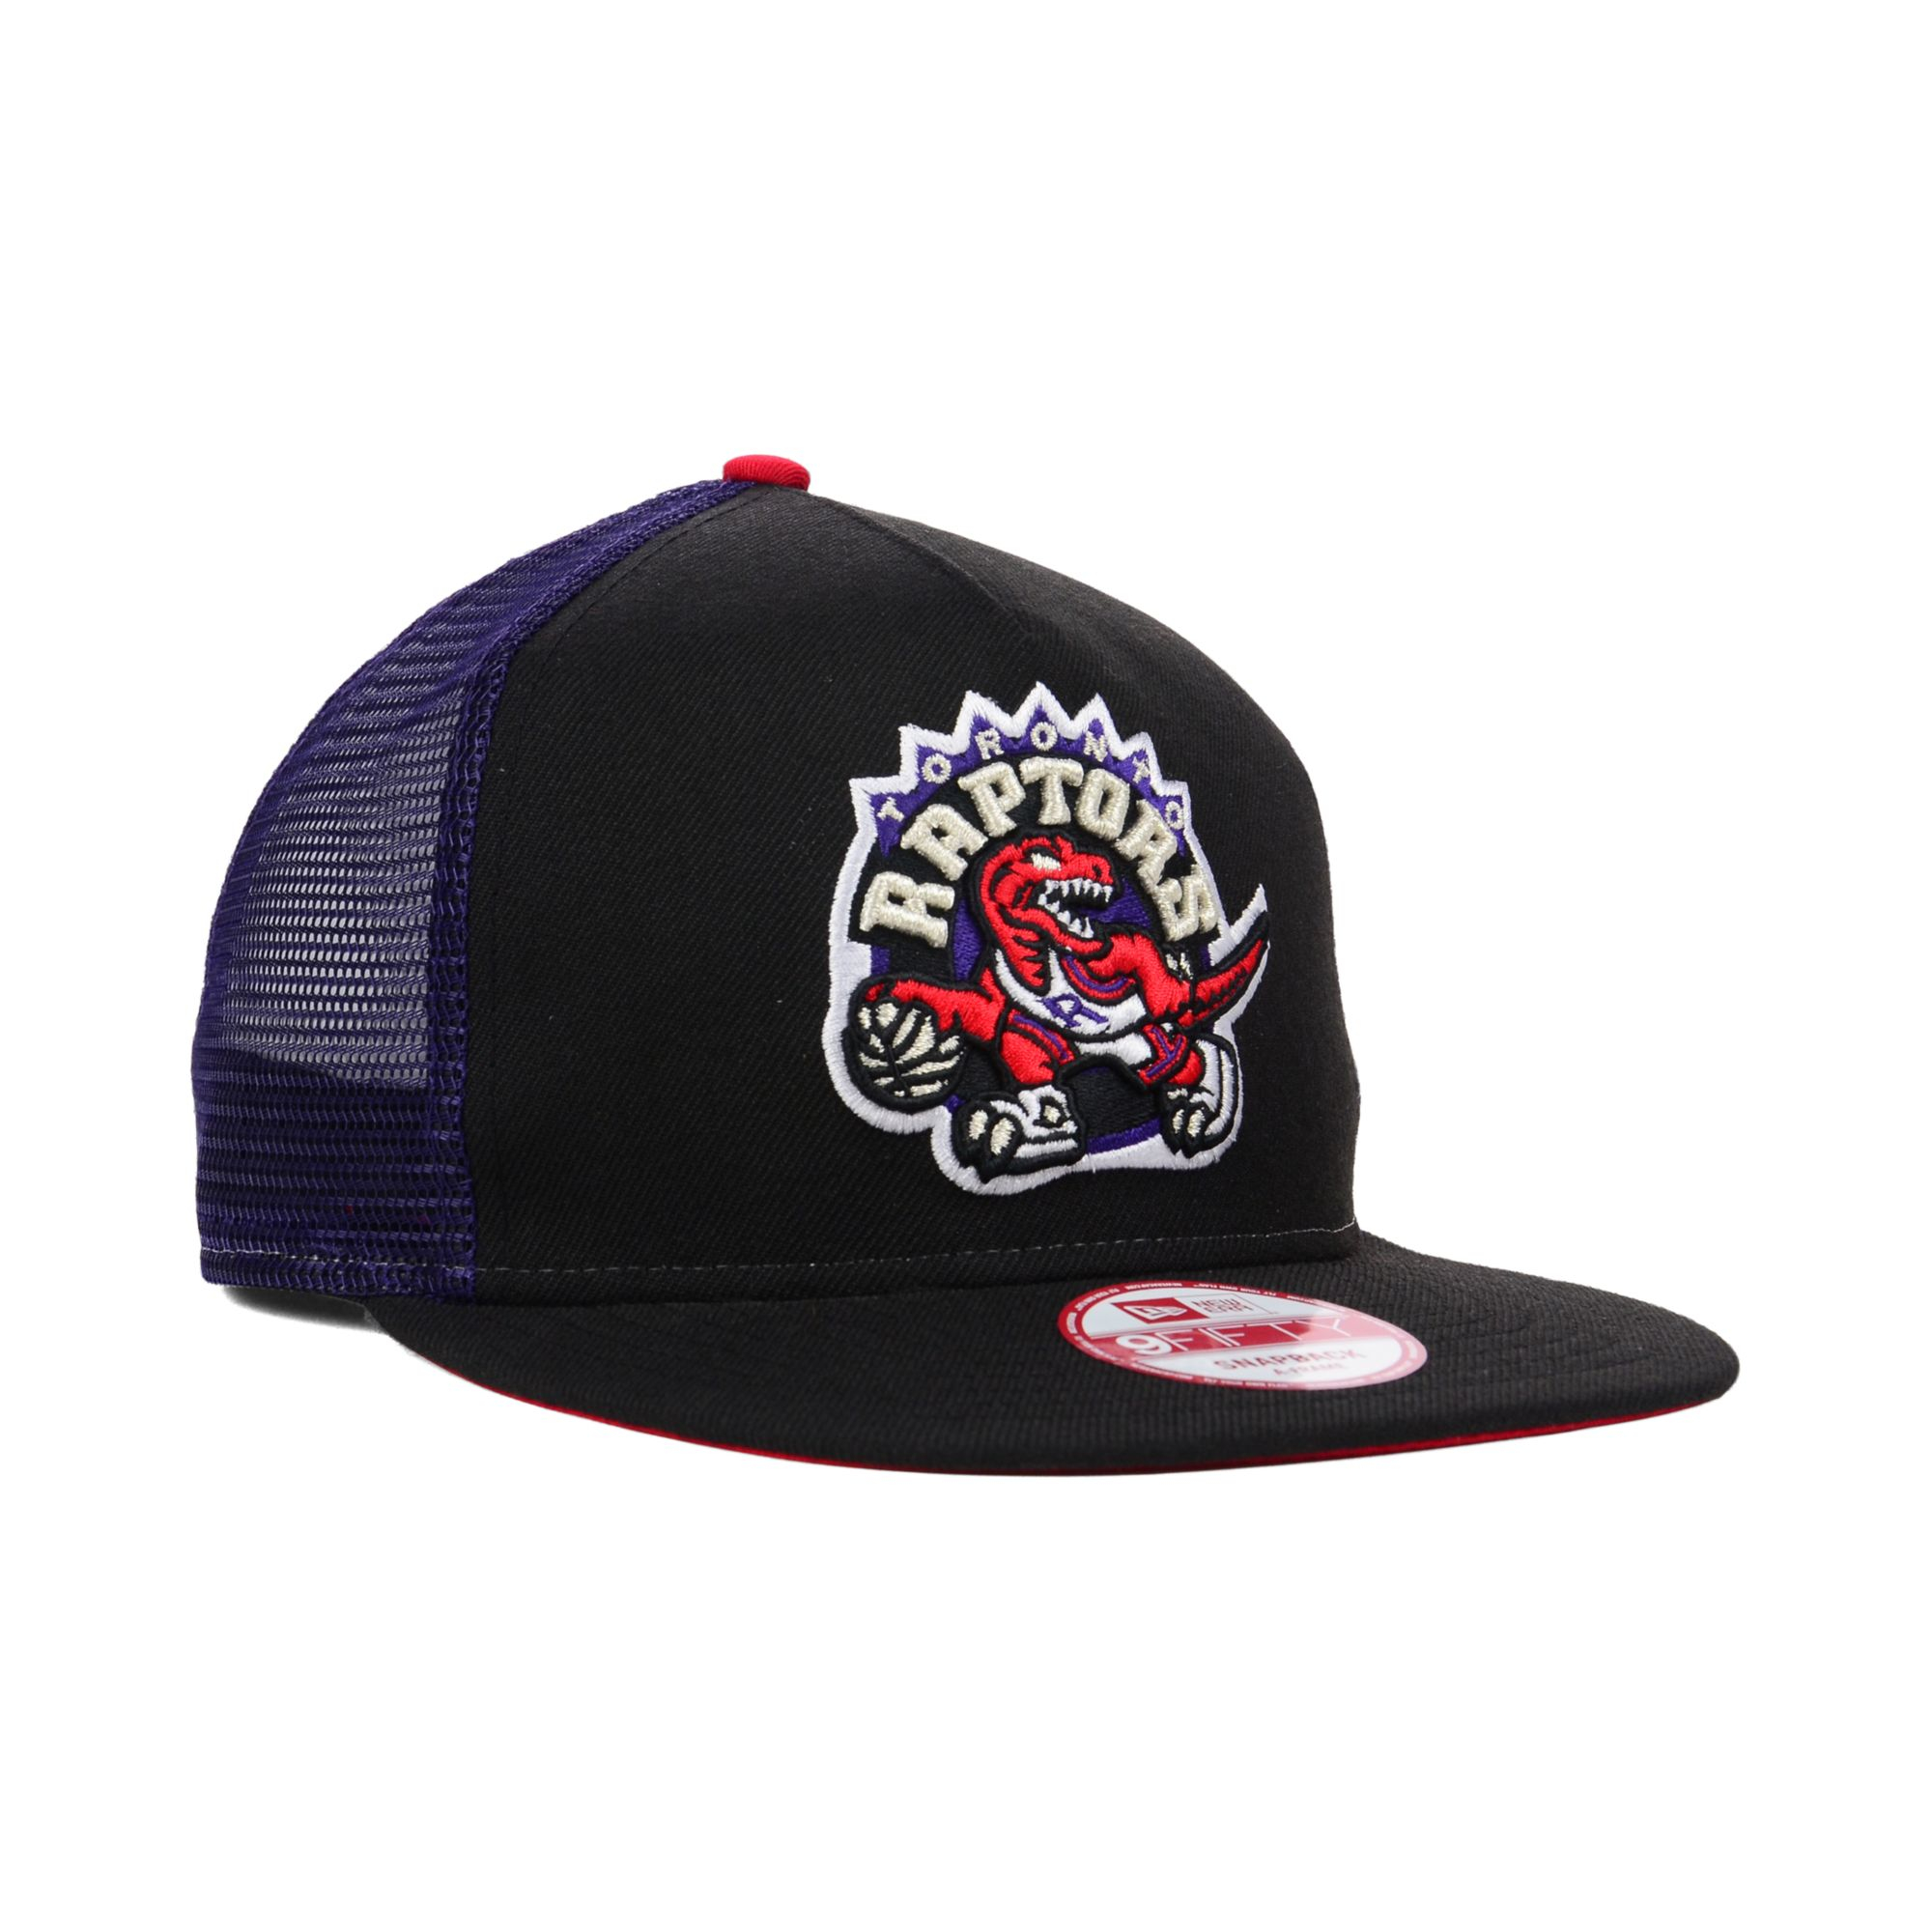 Ktz Toronto Raptors Basic Trucker 9fifty Snapback Cap In